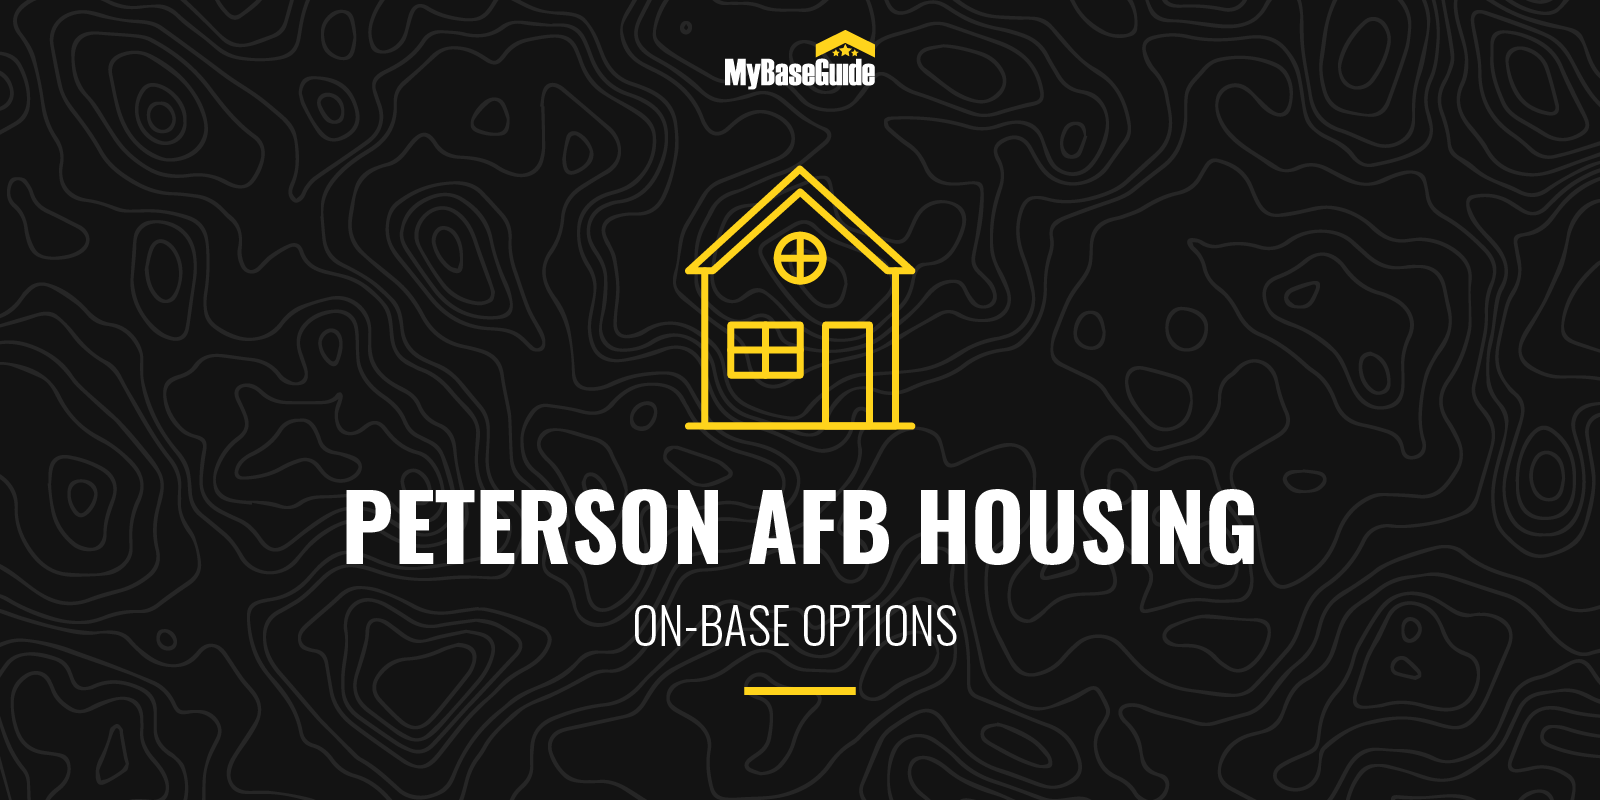 Peterson AFB Housing: On Base Options